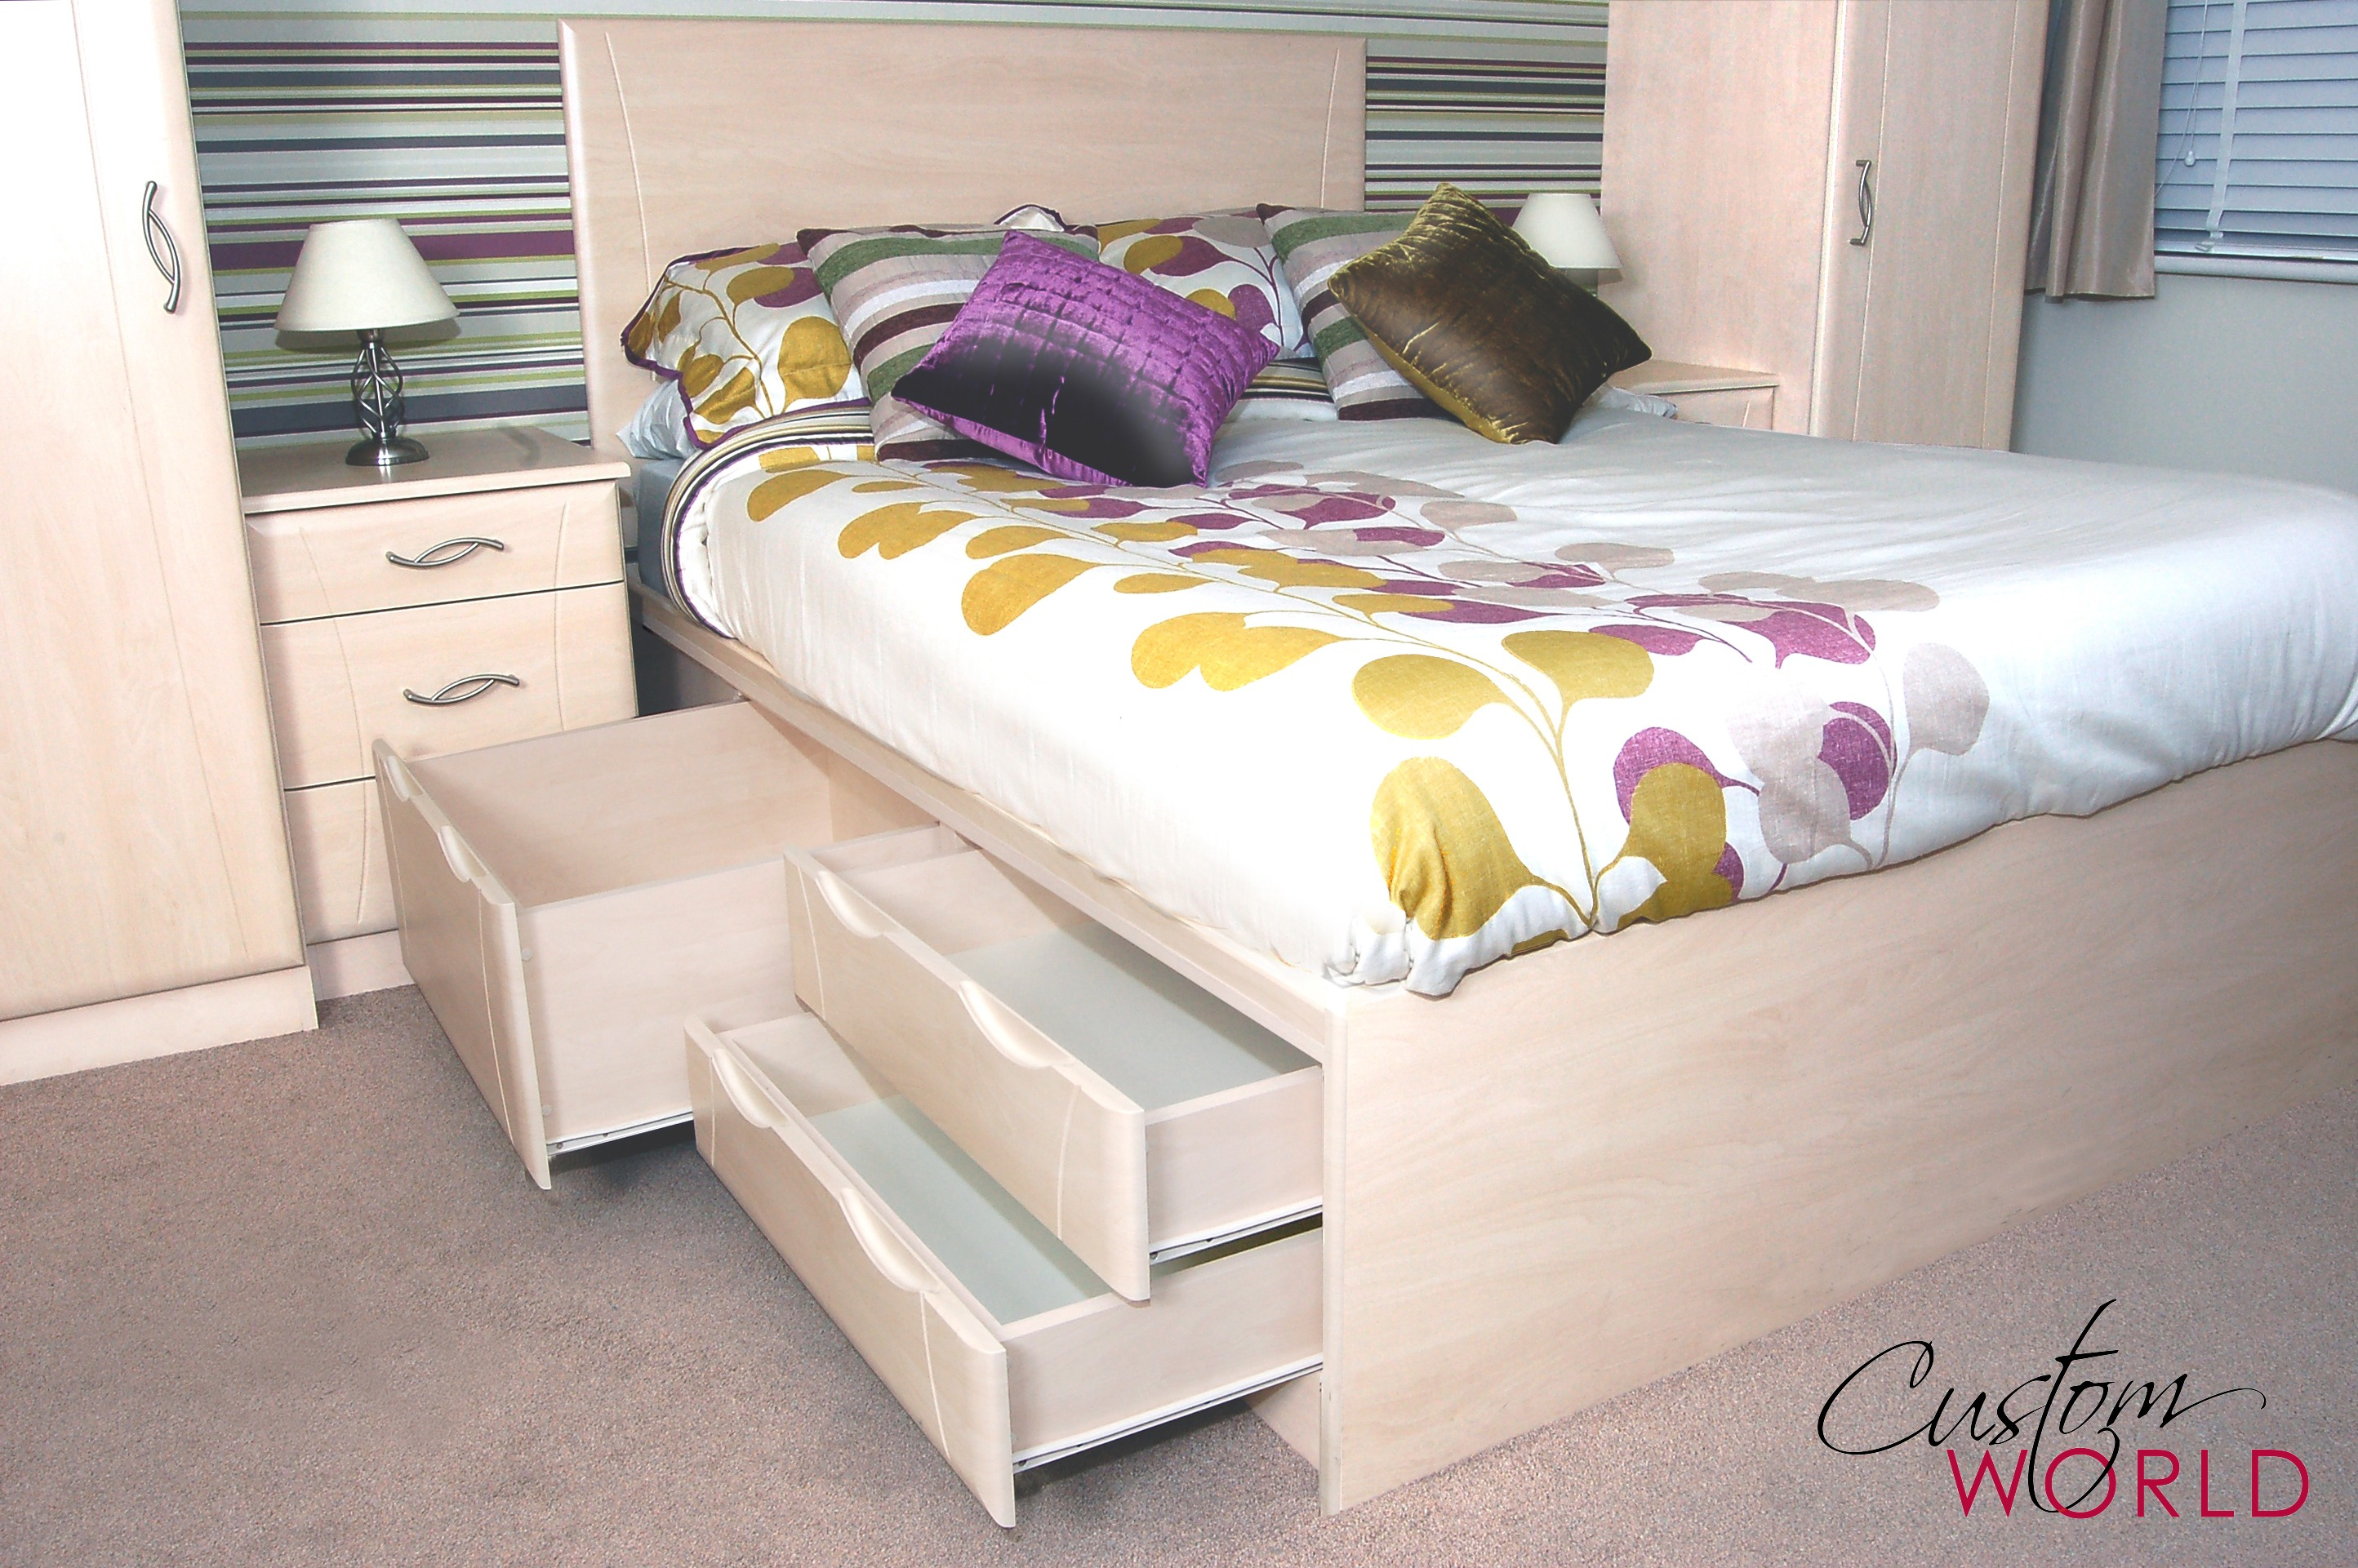 Custom Made Beds Image Gallery - Custom World Bedrooms